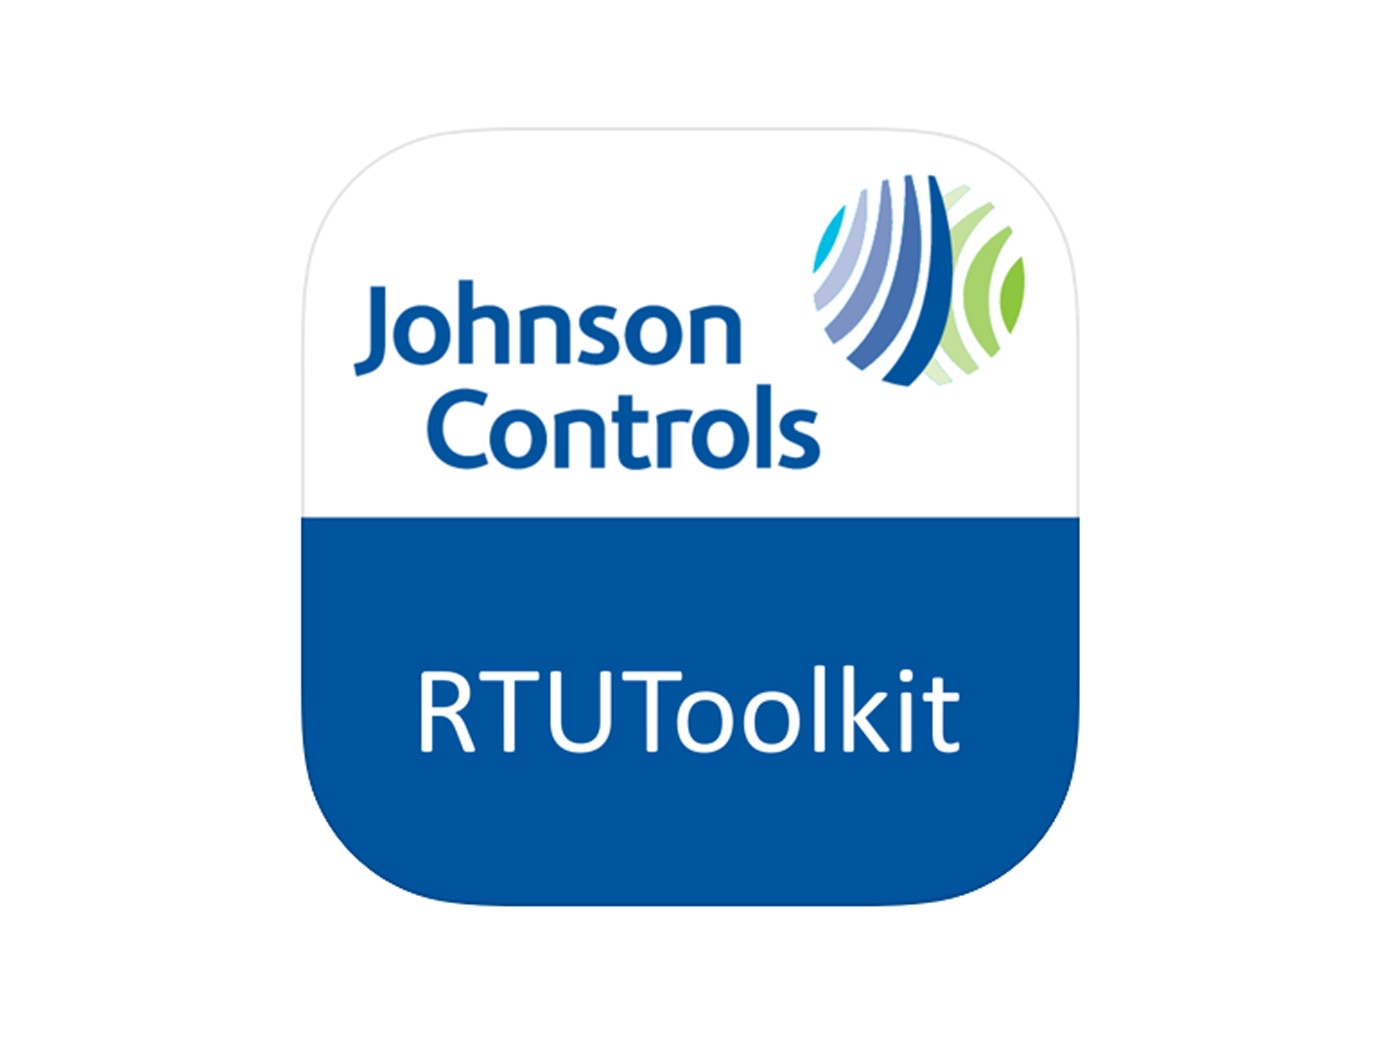 Johnson controls RTU Toolkit logo